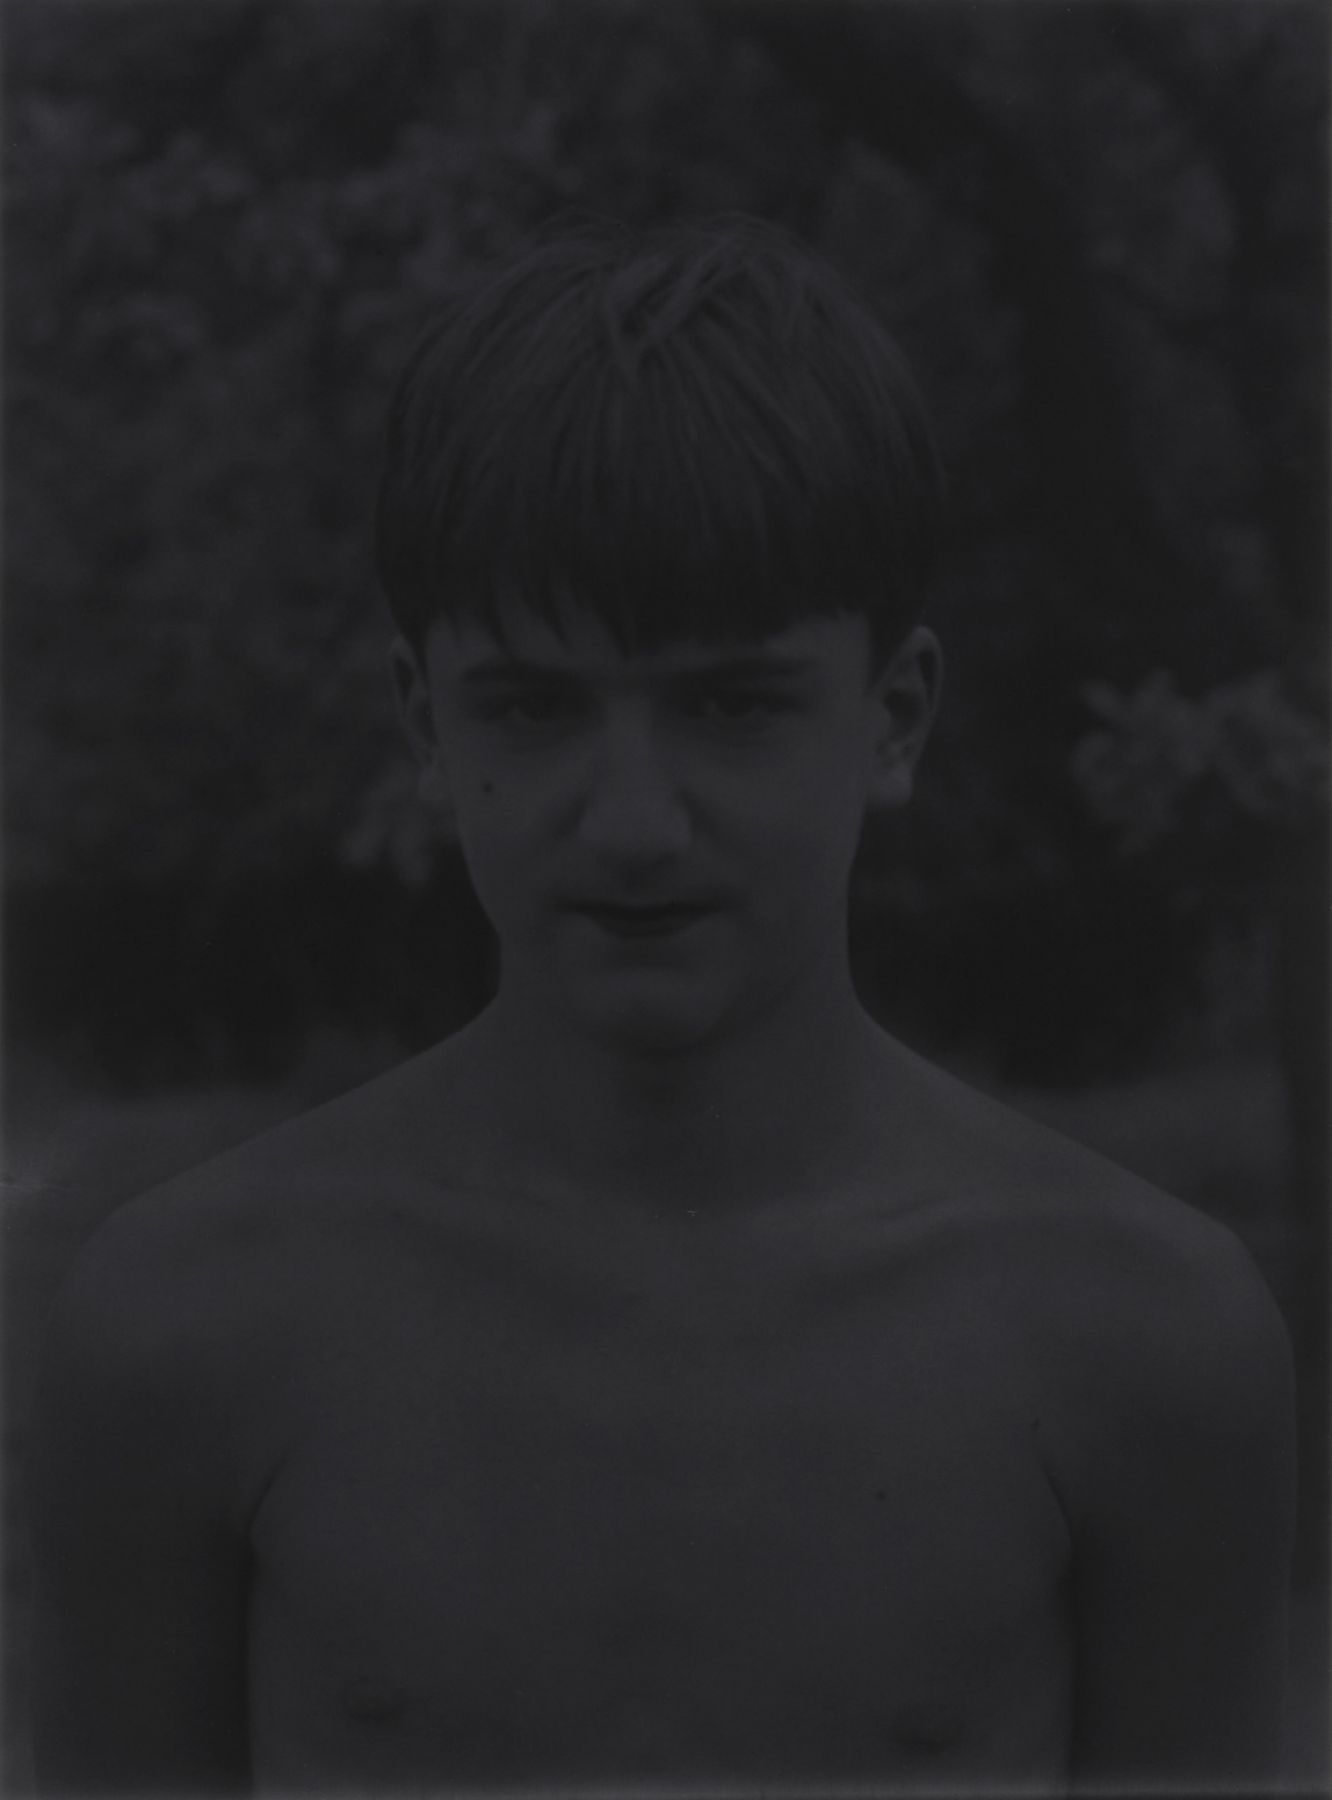 Collier Schorr, The Sorrows of the Young Man, 1995